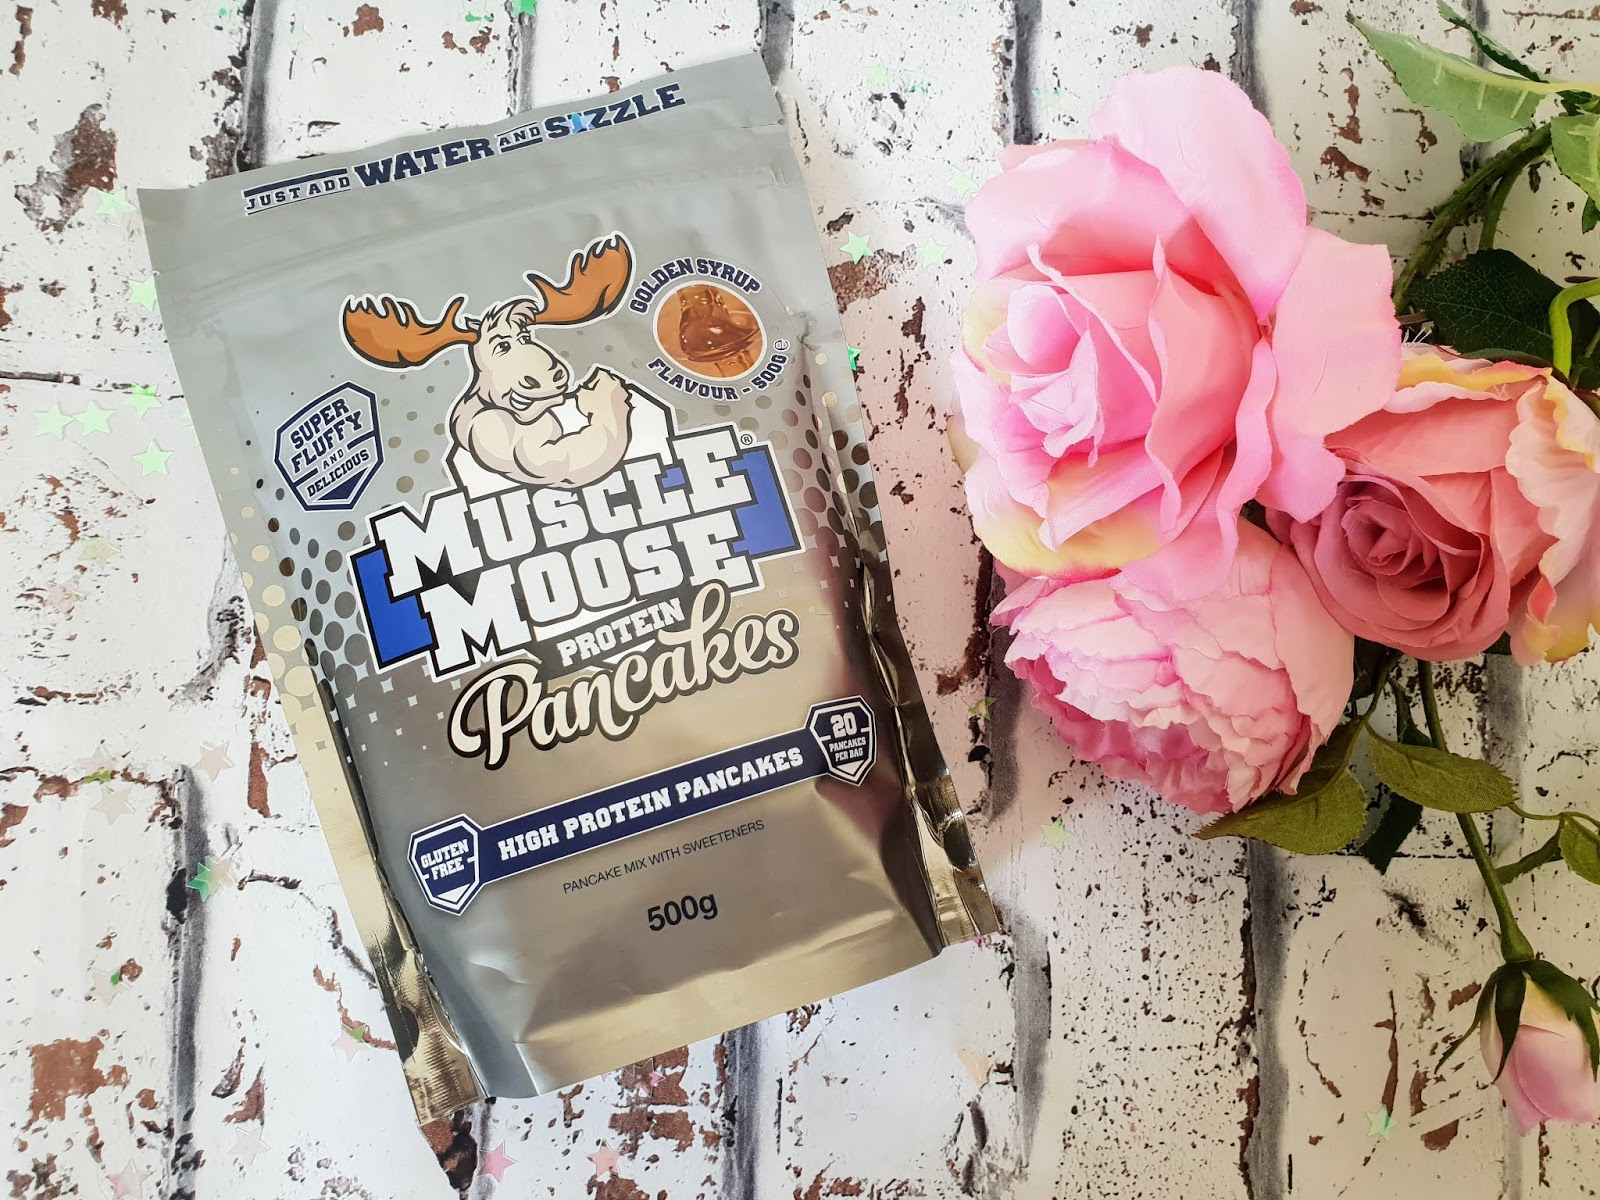 Making Delicious Gluten-Free Protein Pancakes with Muscle Moose!